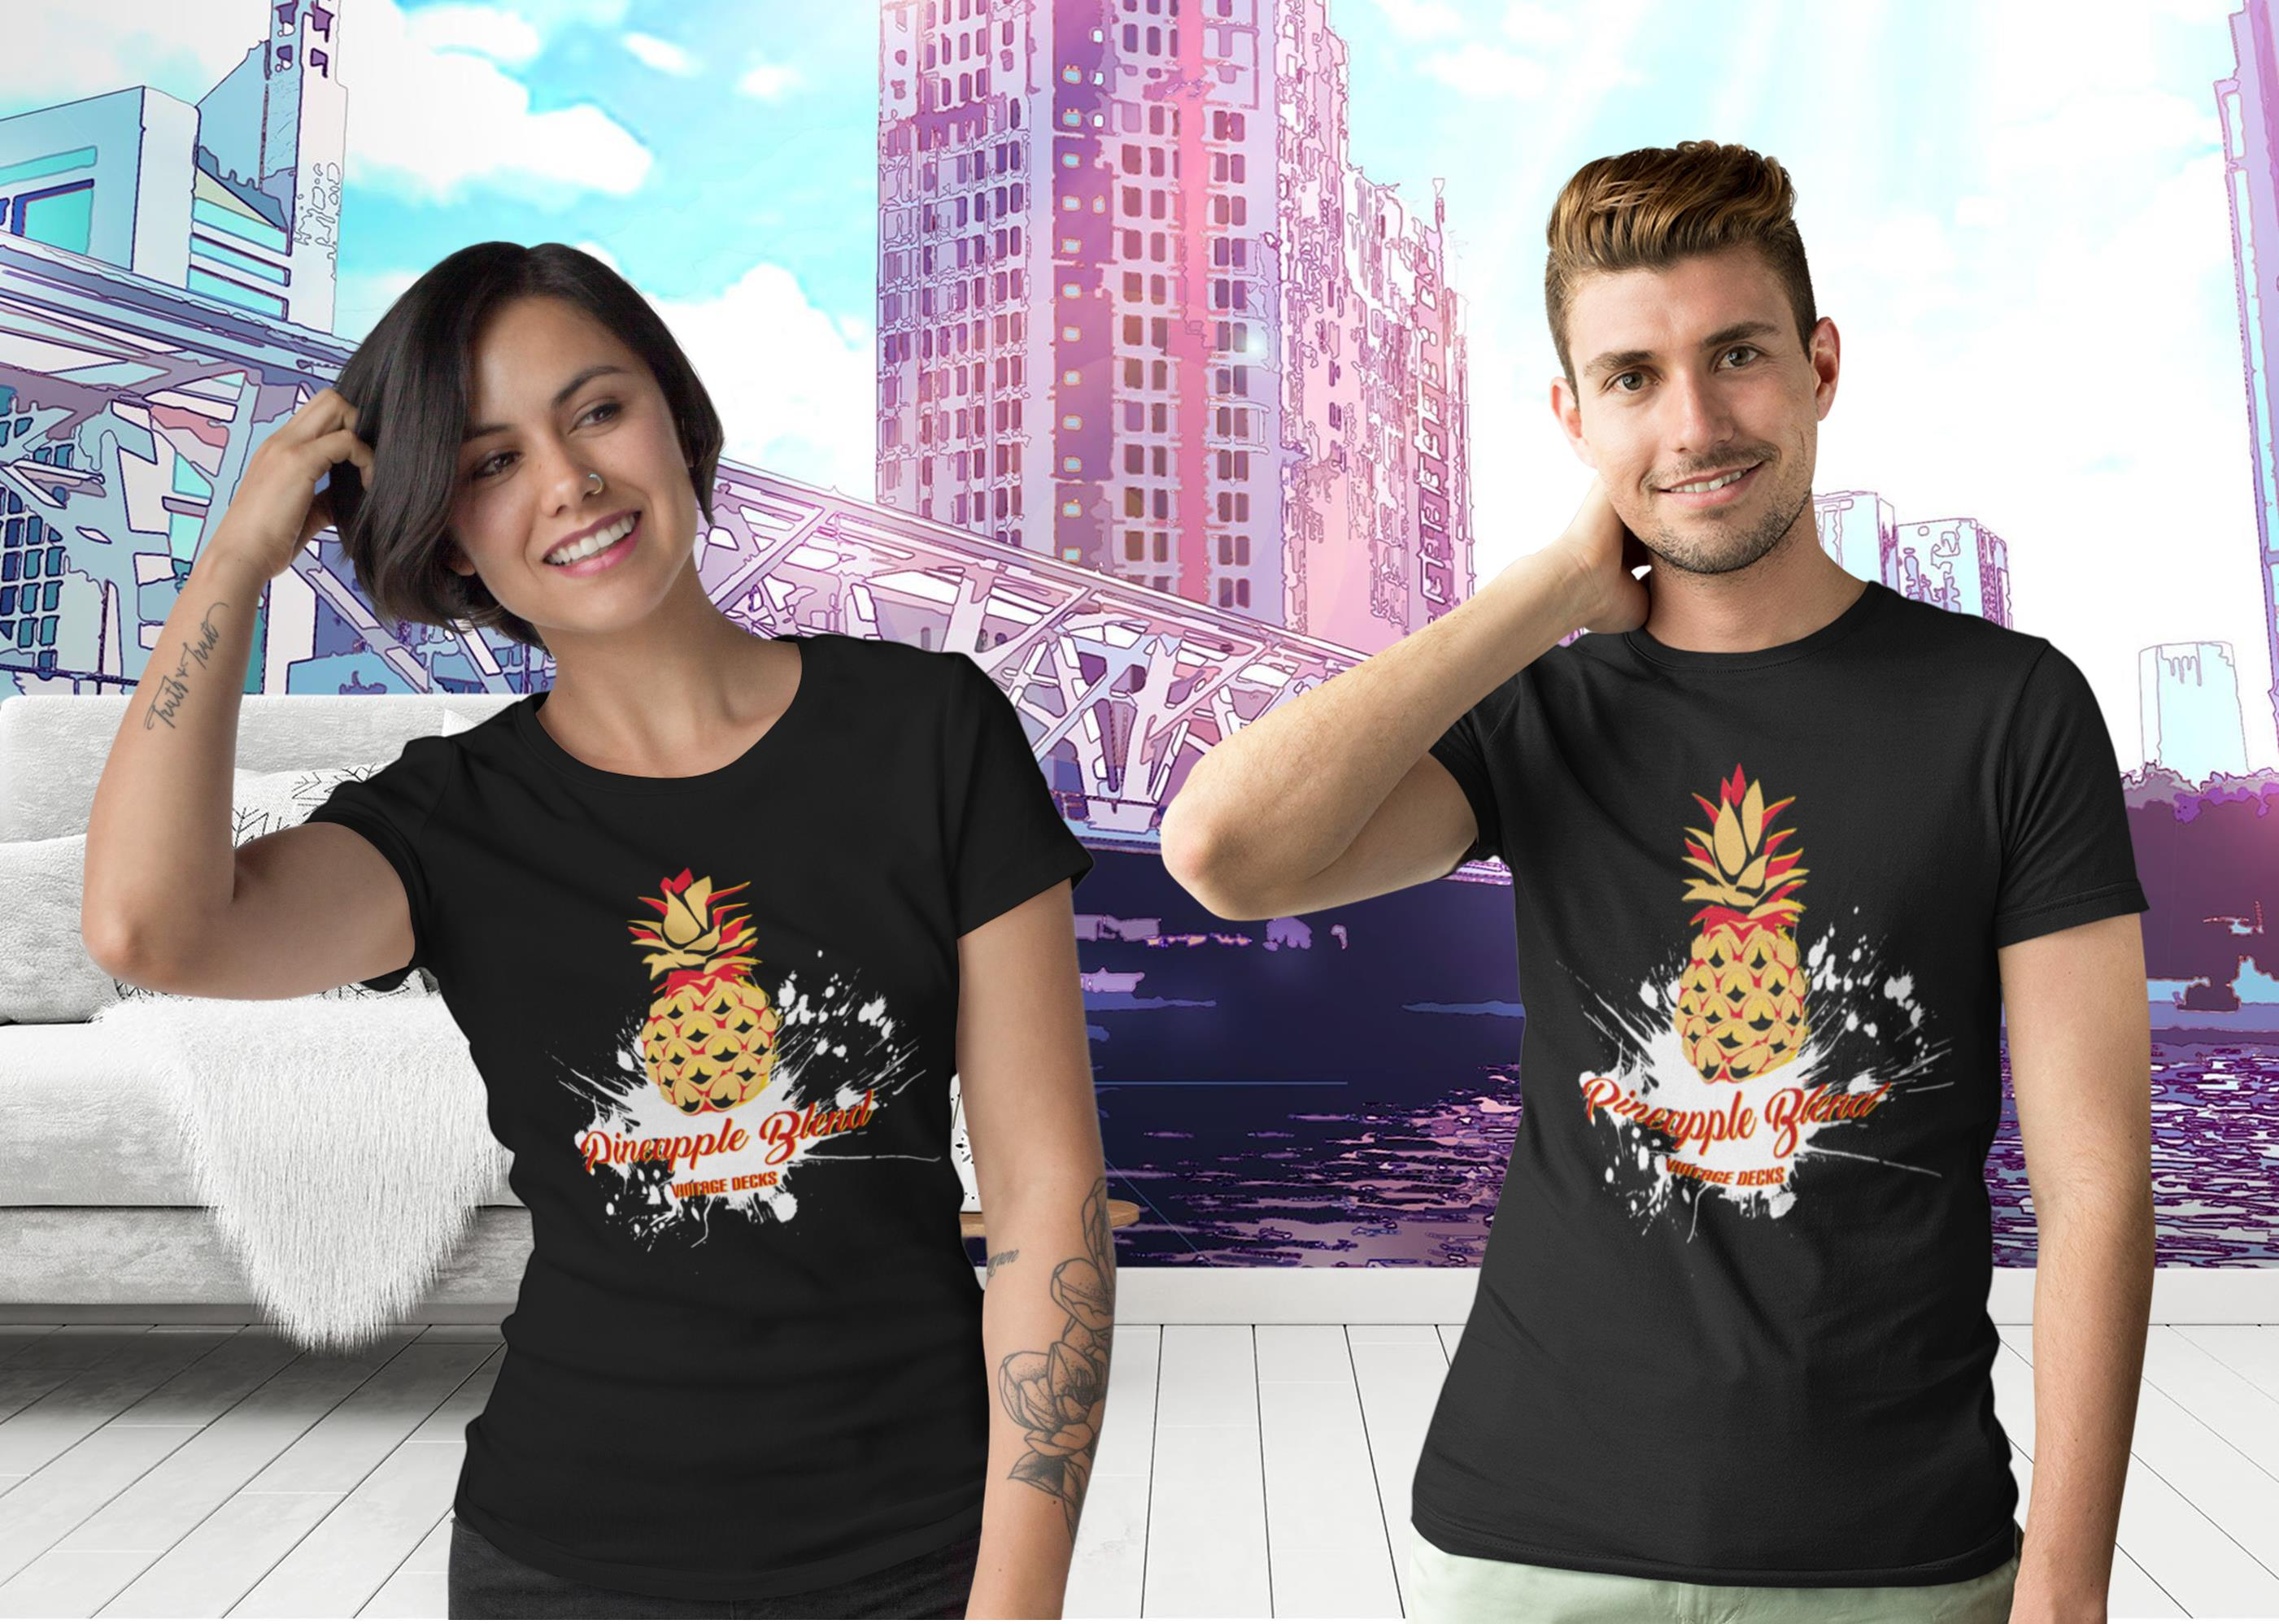 Golden Pineapple T-Shirt